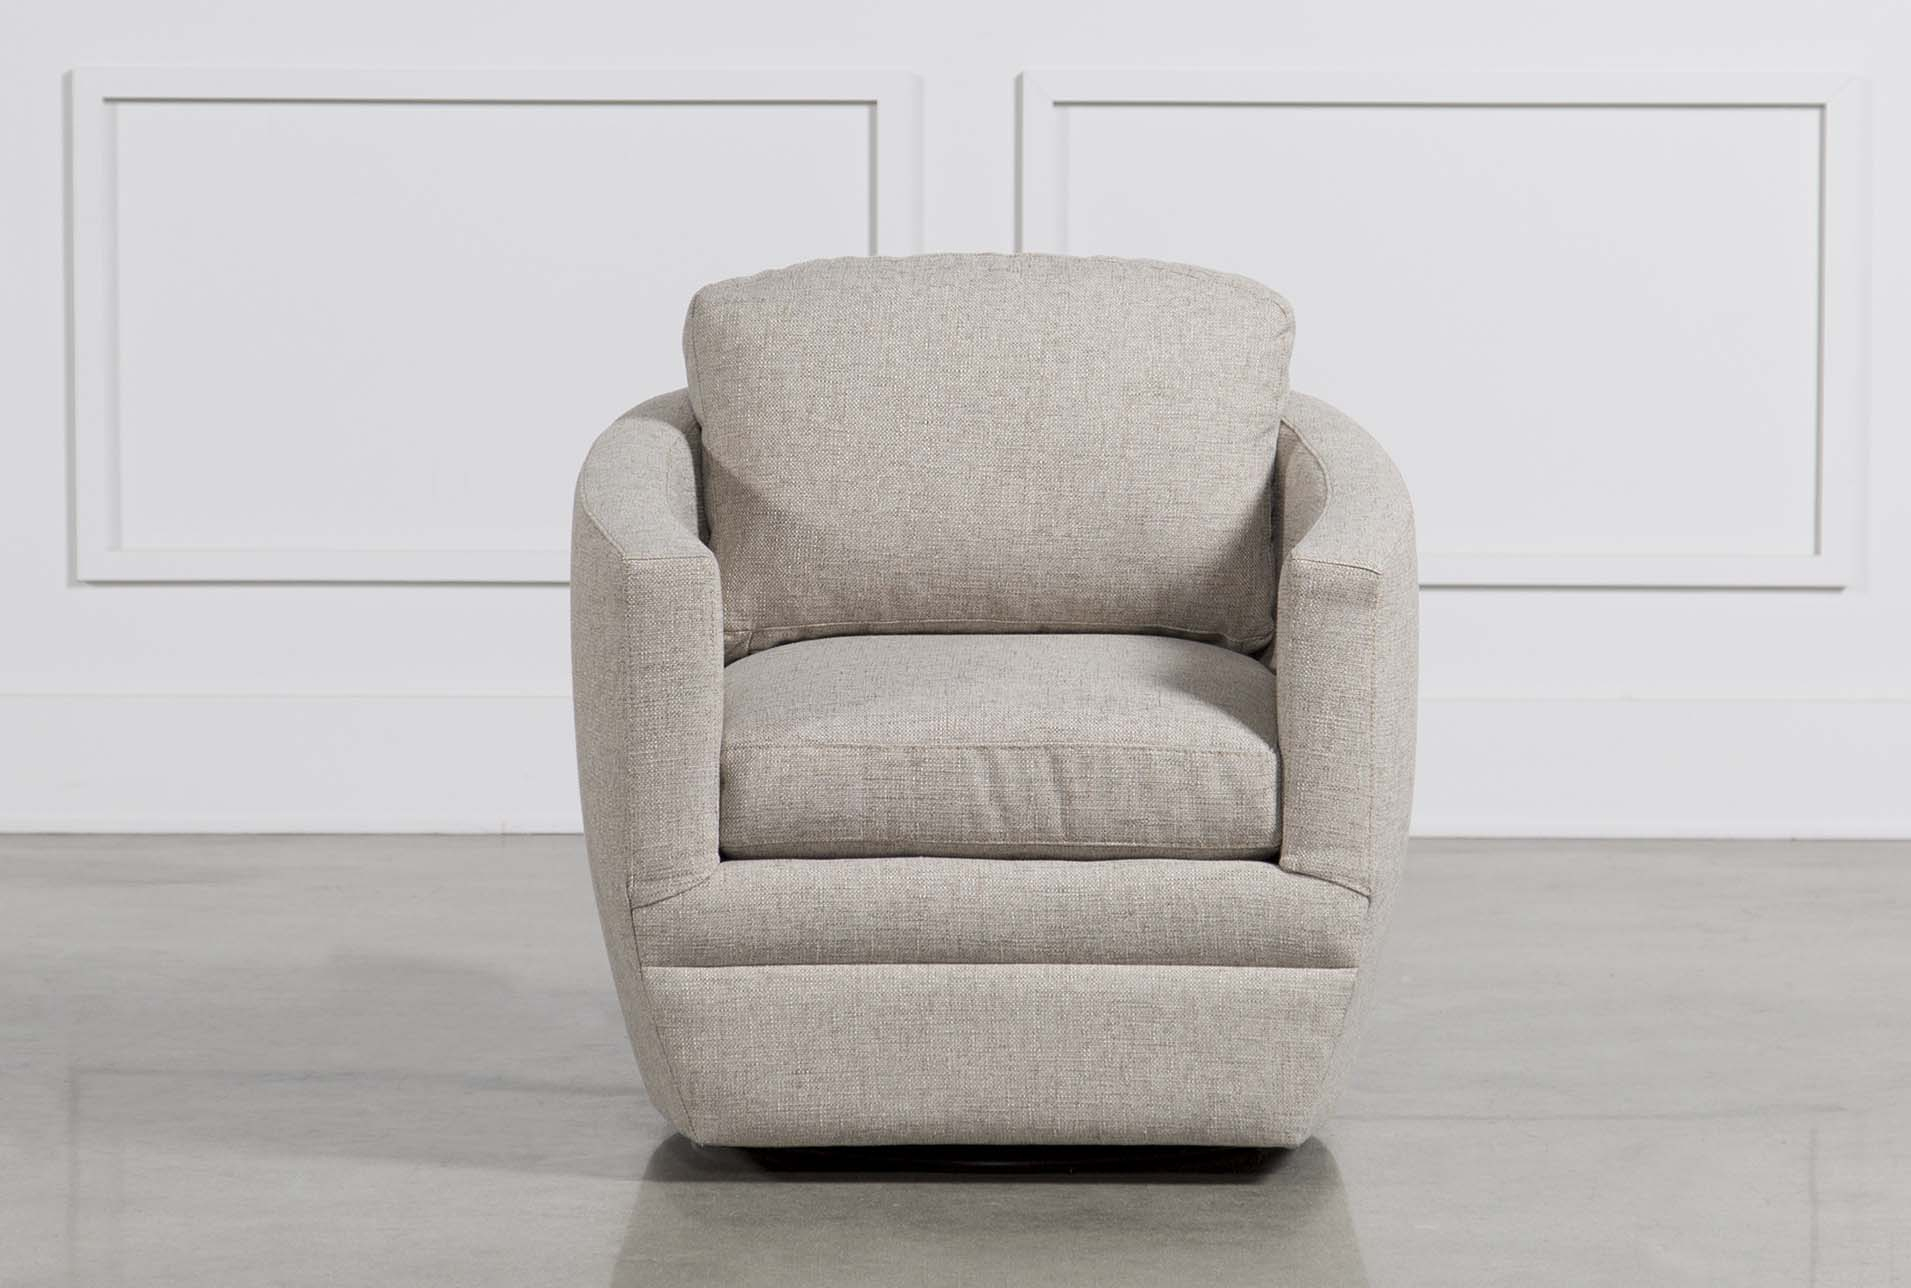 Chadwick Gunmetal Swivel Chair | Products | Pinterest | Swivel Chair In Chadwick Gunmetal Swivel Chairs (Image 3 of 20)